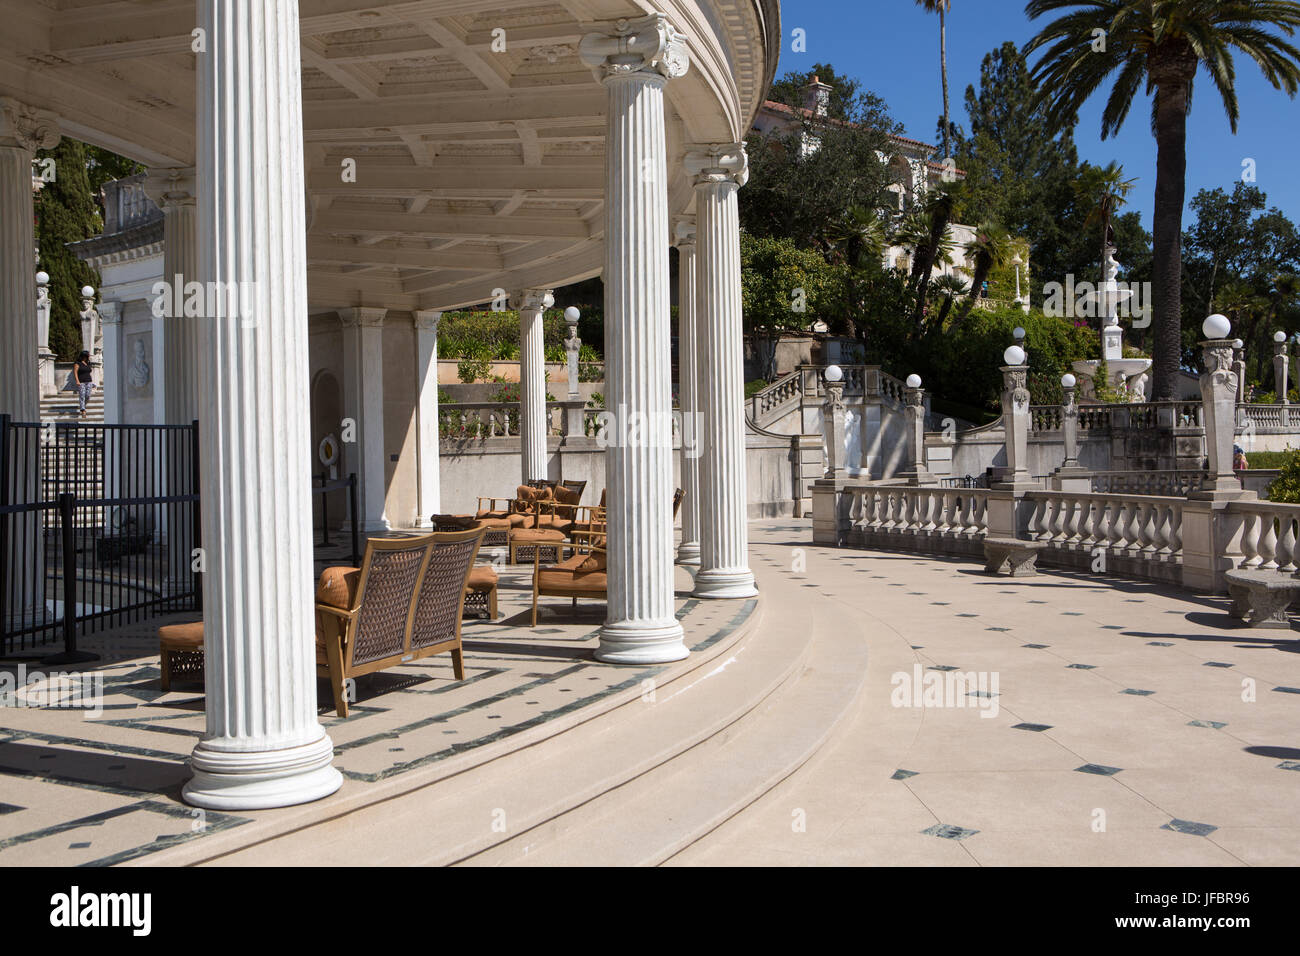 A view of the sitting area and veranda near the Neptune Pool at Hearst Castle. - Stock Image